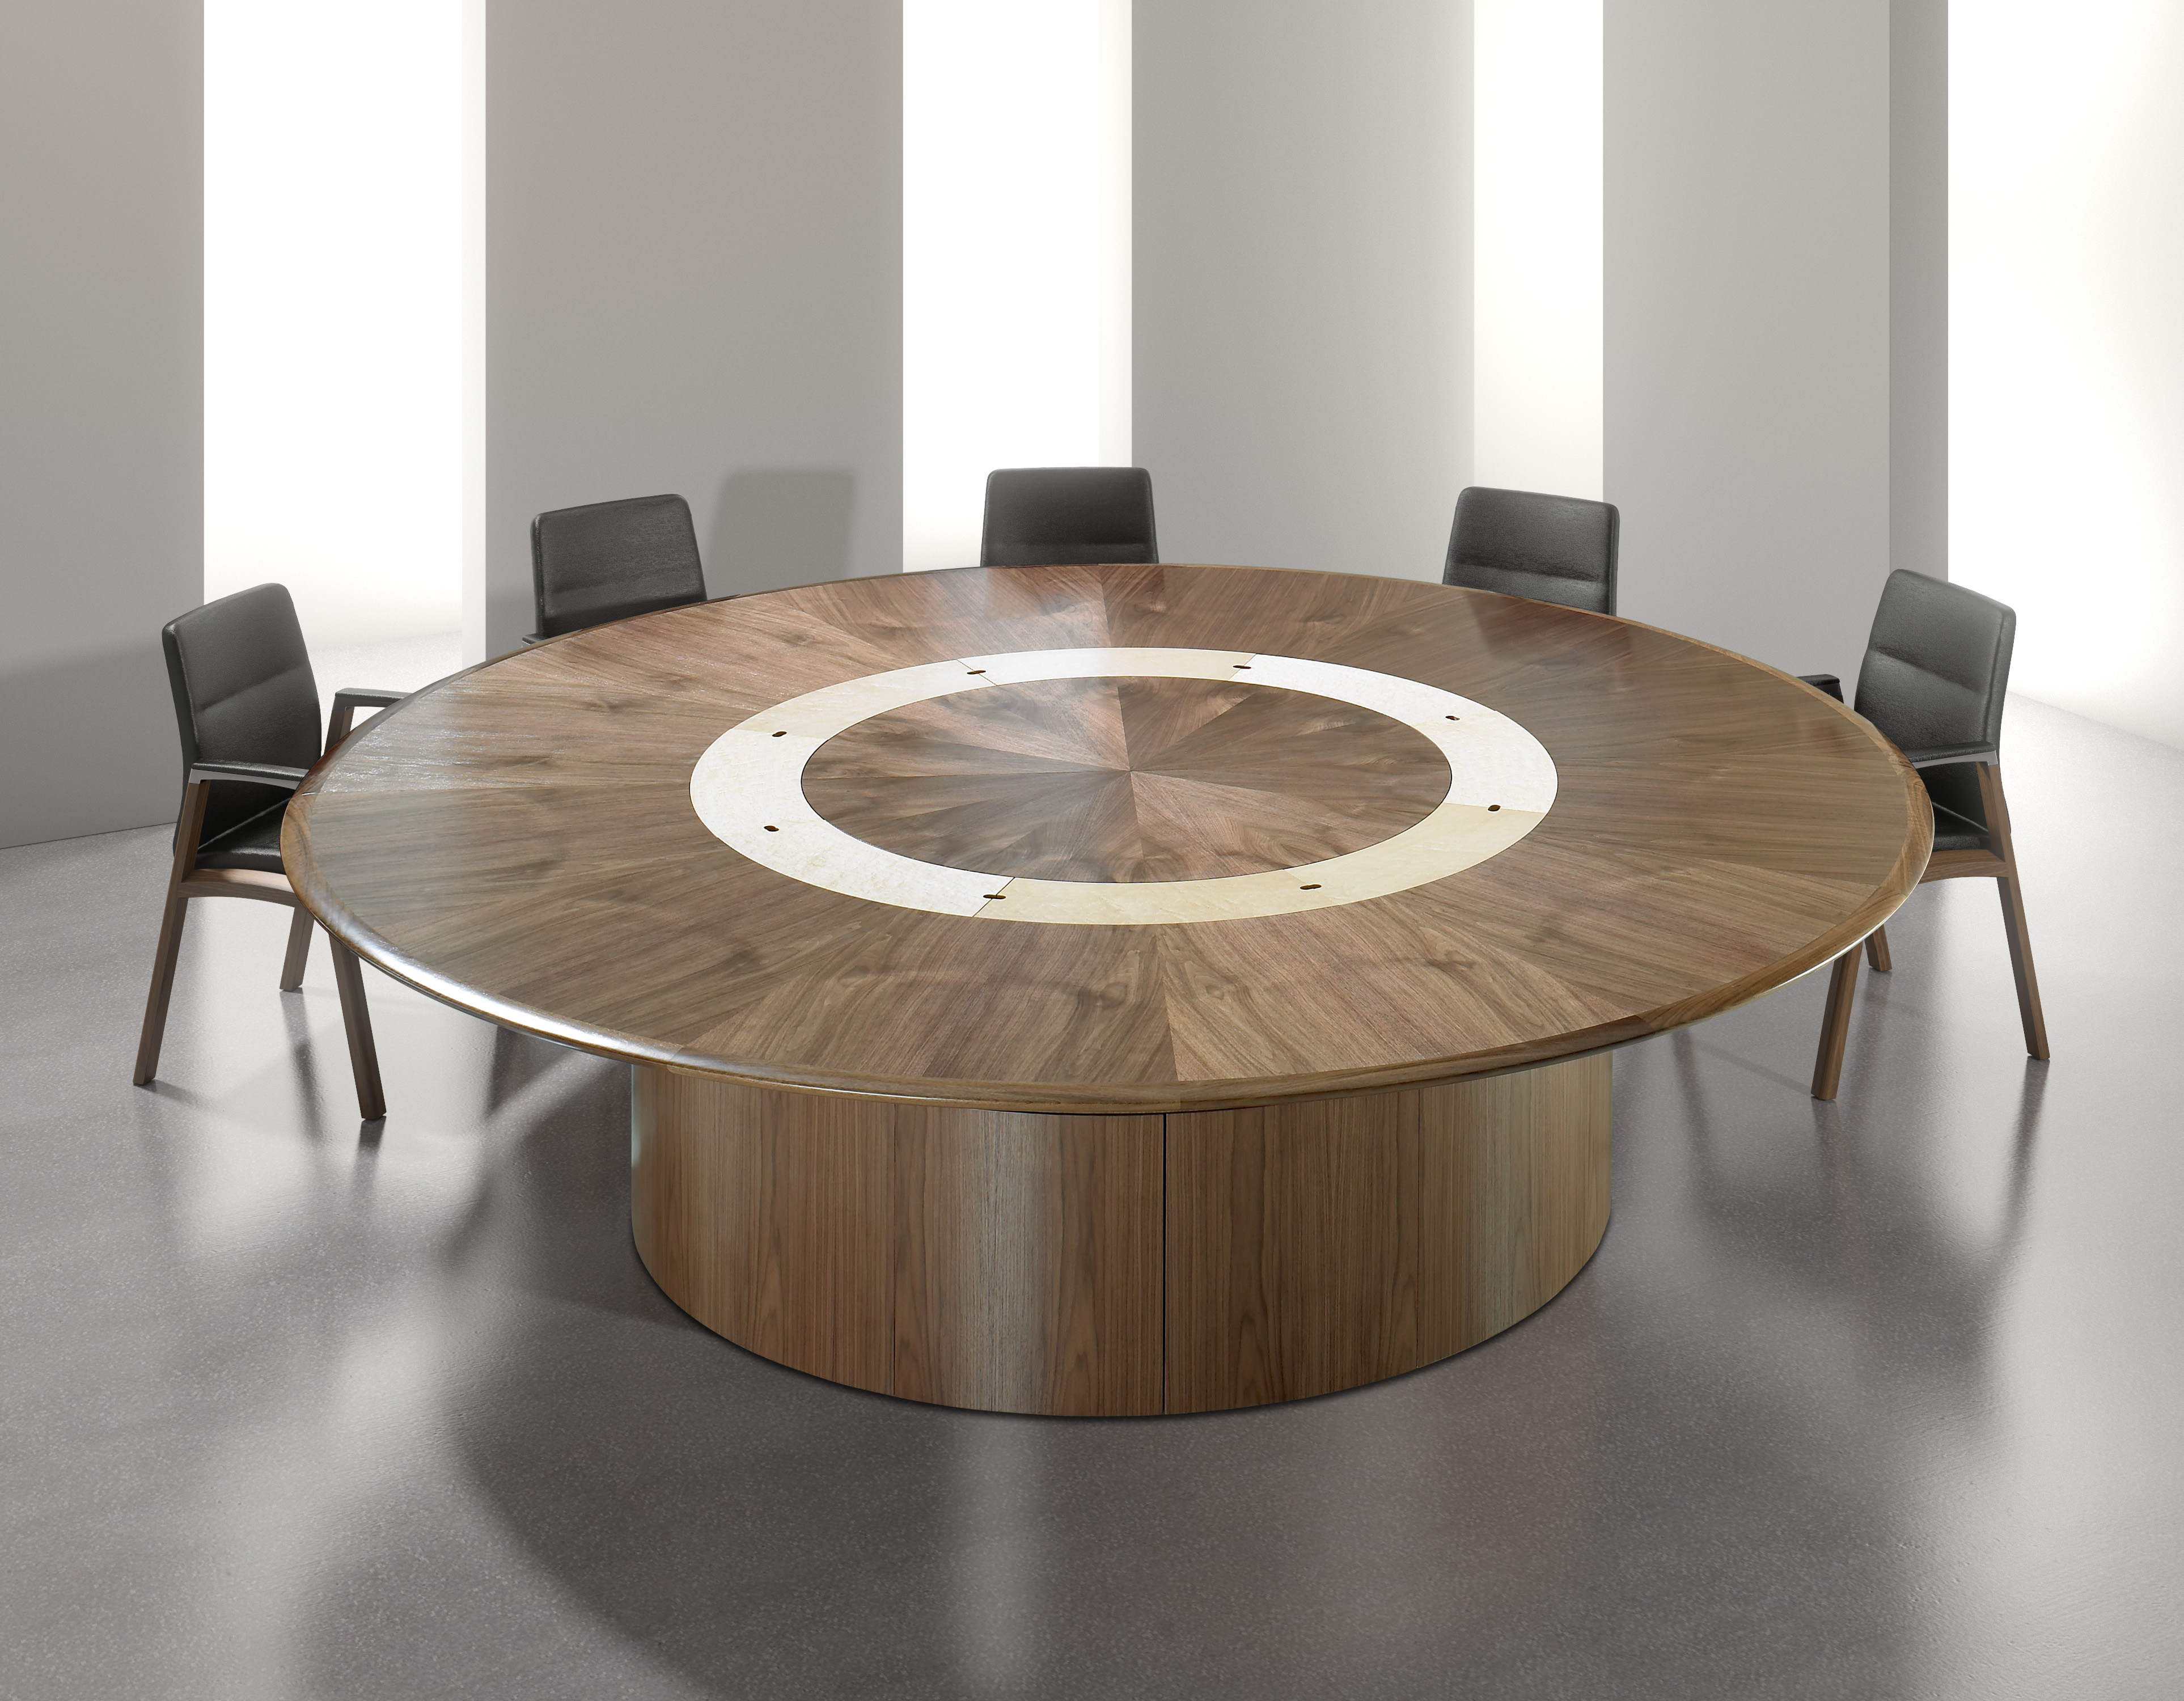 Circular Walnut Veneer Meeting Table with Cable Management Tiles